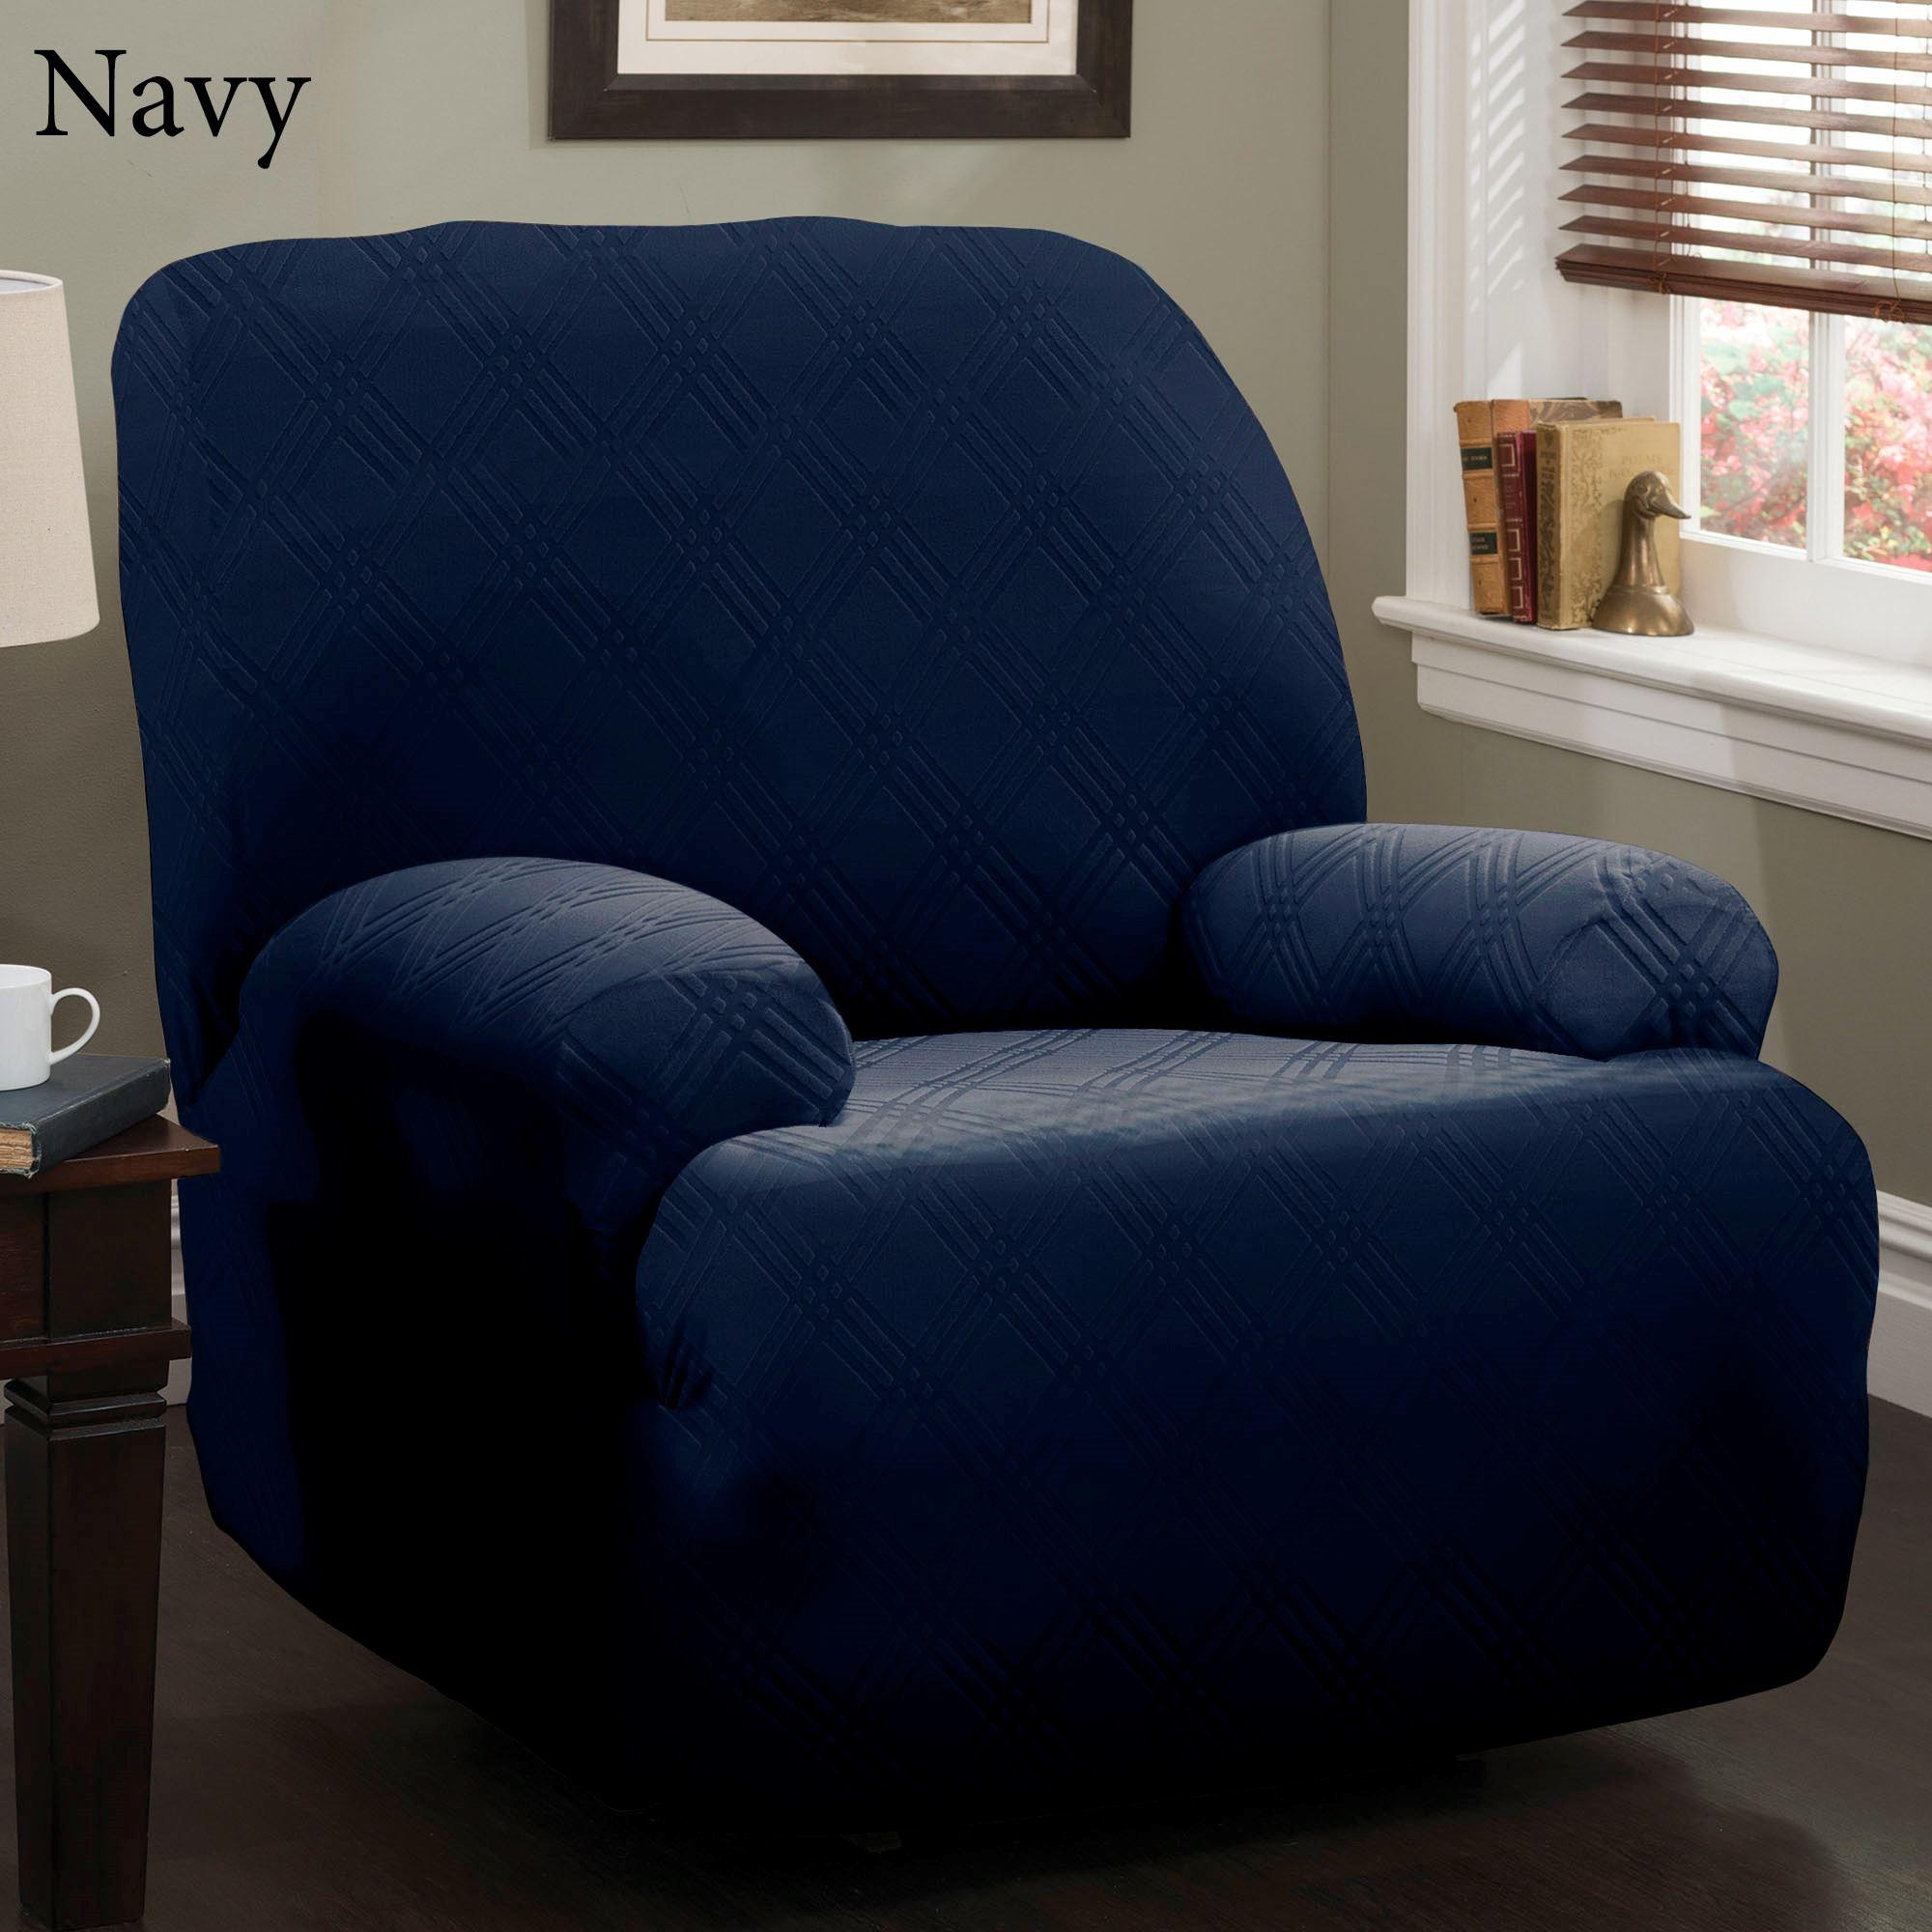 Double Diamond Stretch Jumbo Recliner Slipcovers Throughout Navy Blue Slipcovers (View 2 of 20)